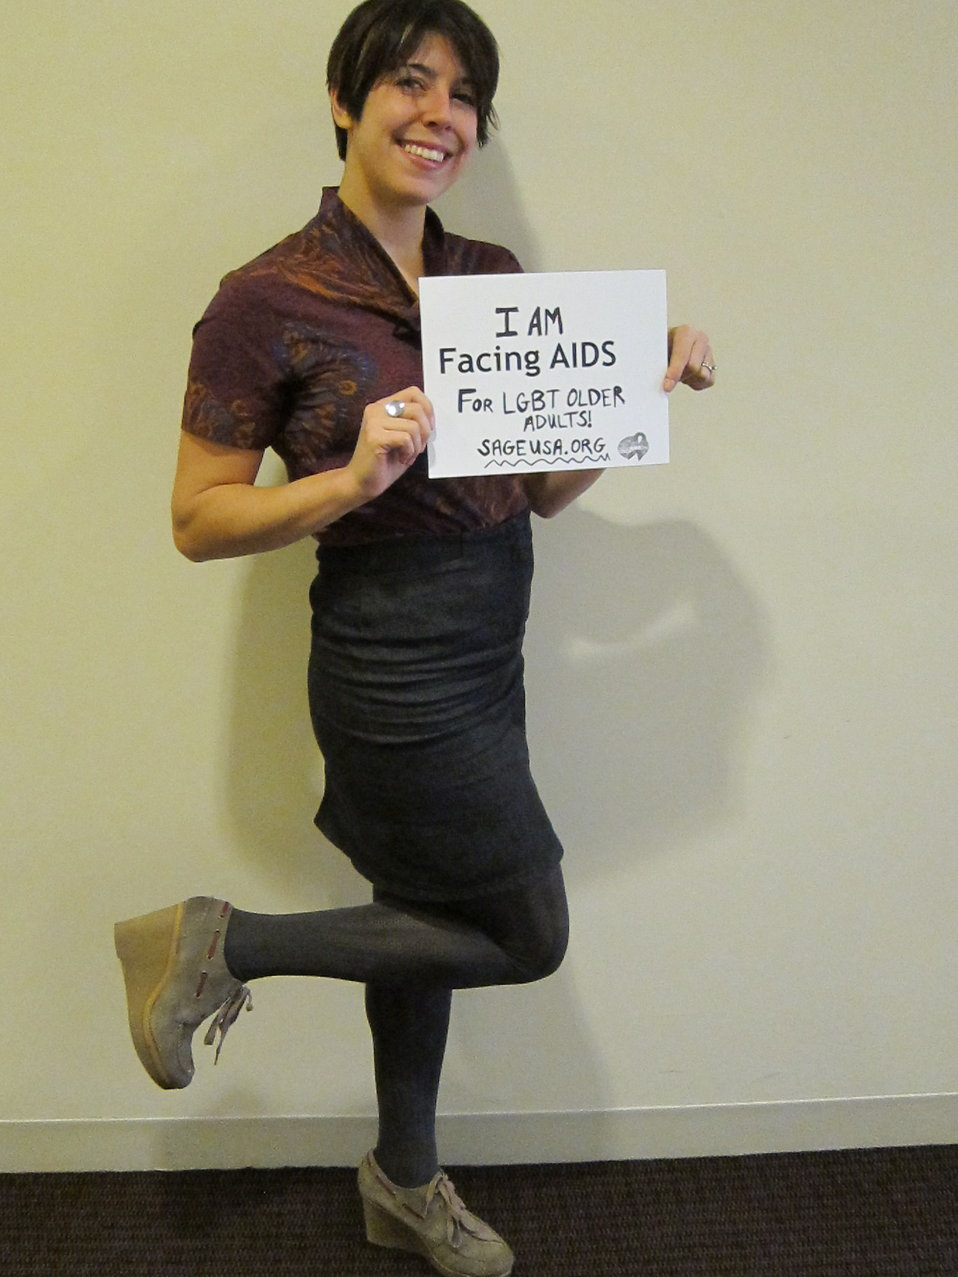 I am Facing AIDS for LGBT older adults. www.sageusa.org